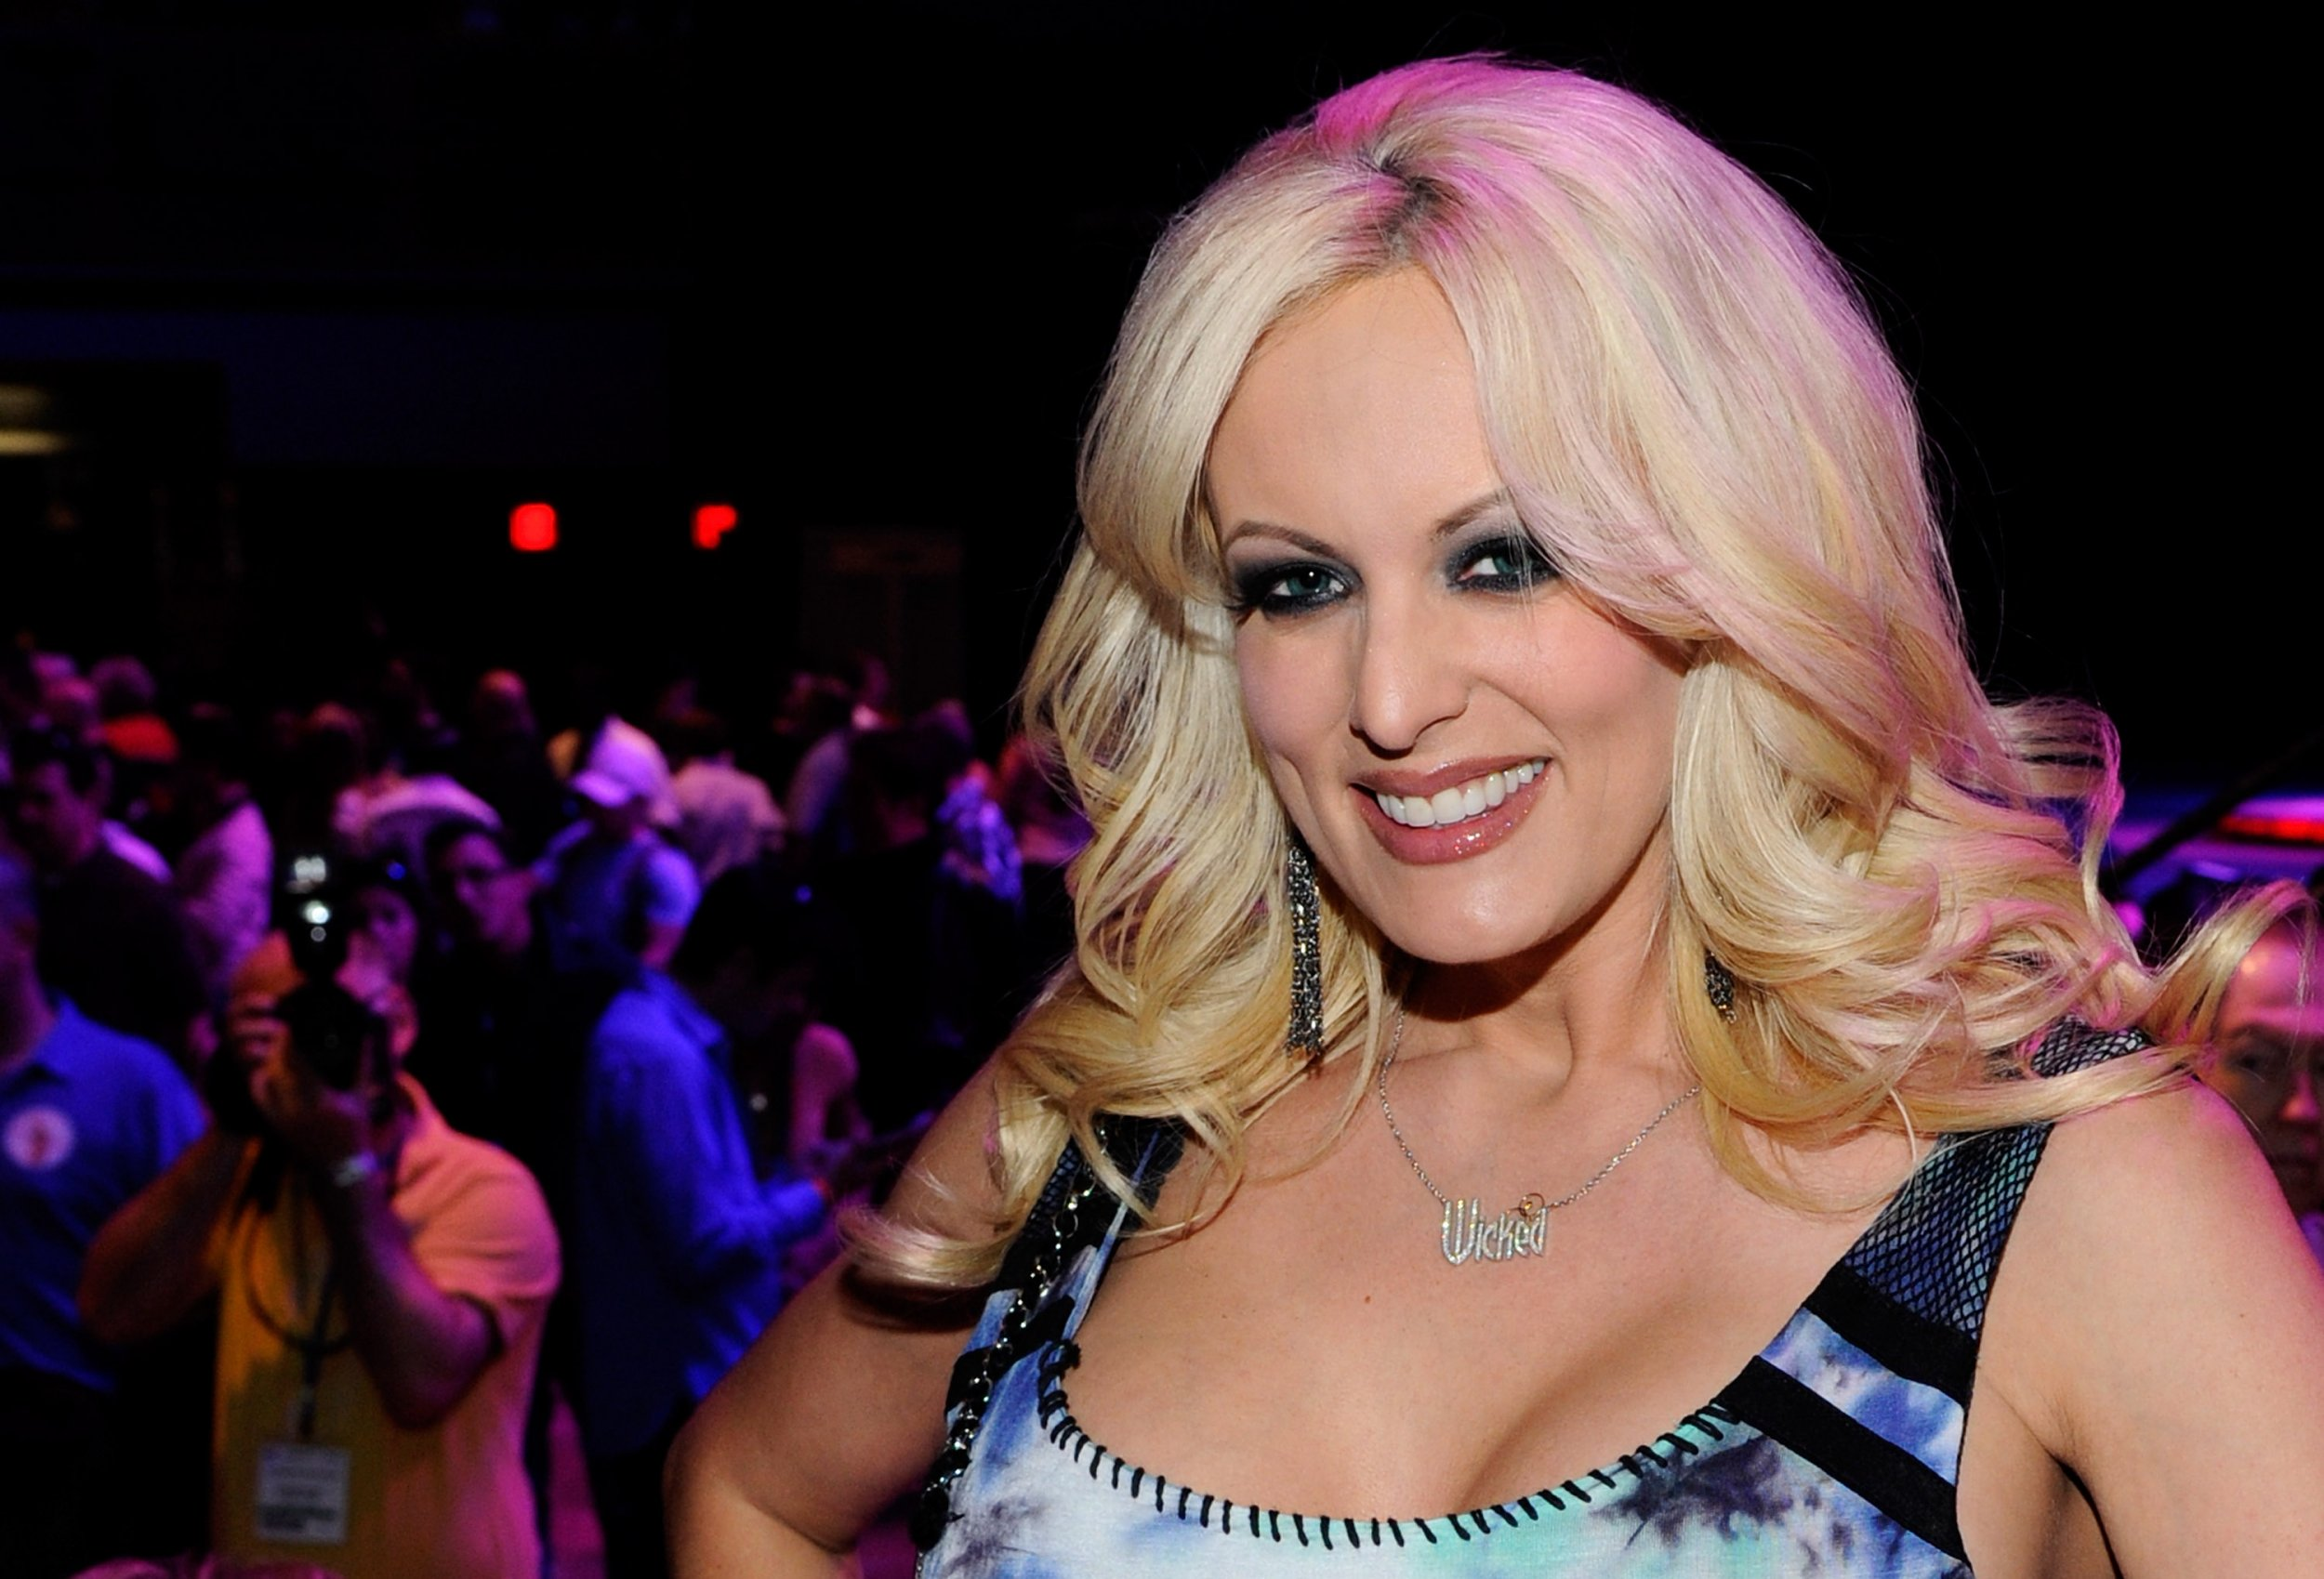 Trump lawyer brokered $130000 in hush money to porn star